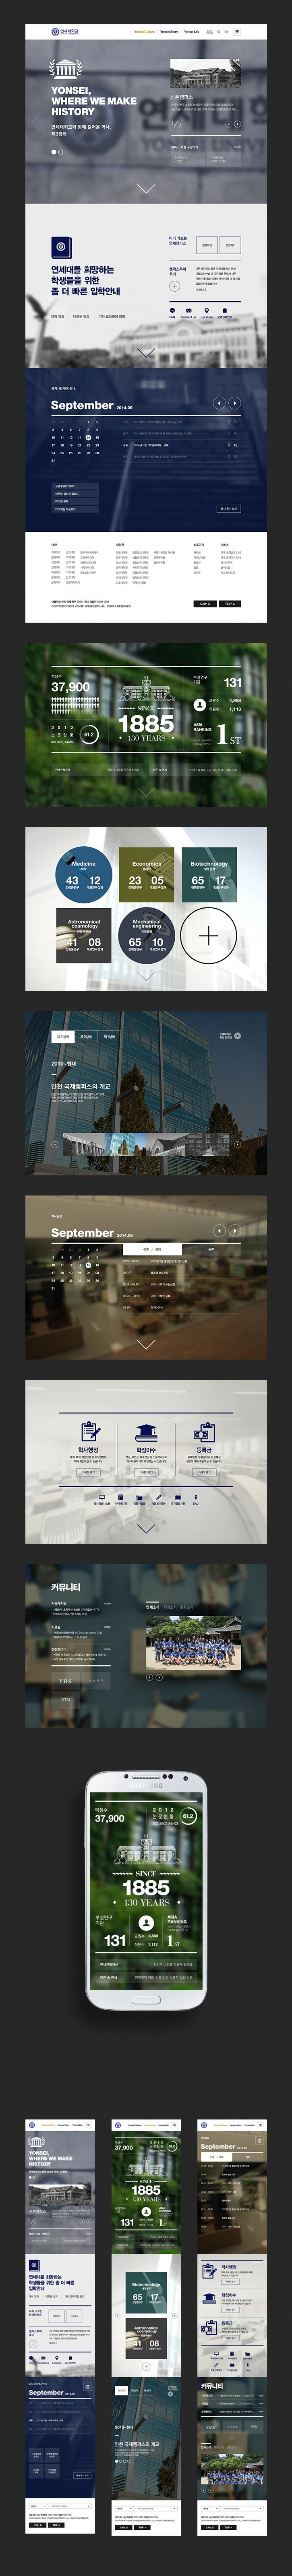 Yonsei University Web, Mobile renewal proposal